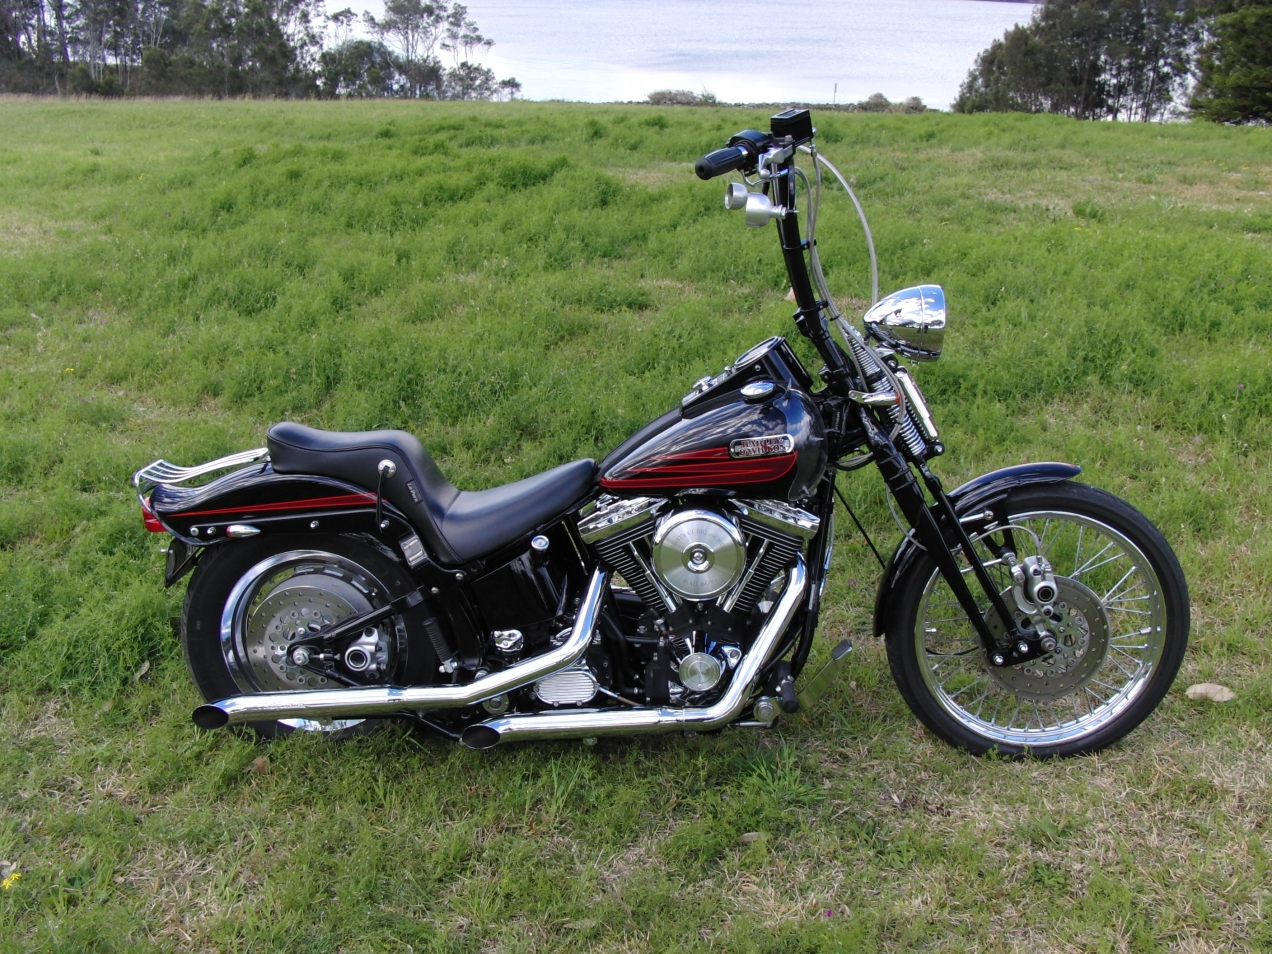 harley-davidson-softail-springer-1995-bad-boy-FXSTSB-evolution-1340-carlini-evil-apehangers-lepera-le-pera-cherokee-seat-jeremiah-watt-slotted-concho-joker-machine-mirrors-psalmistice_CIMG2870